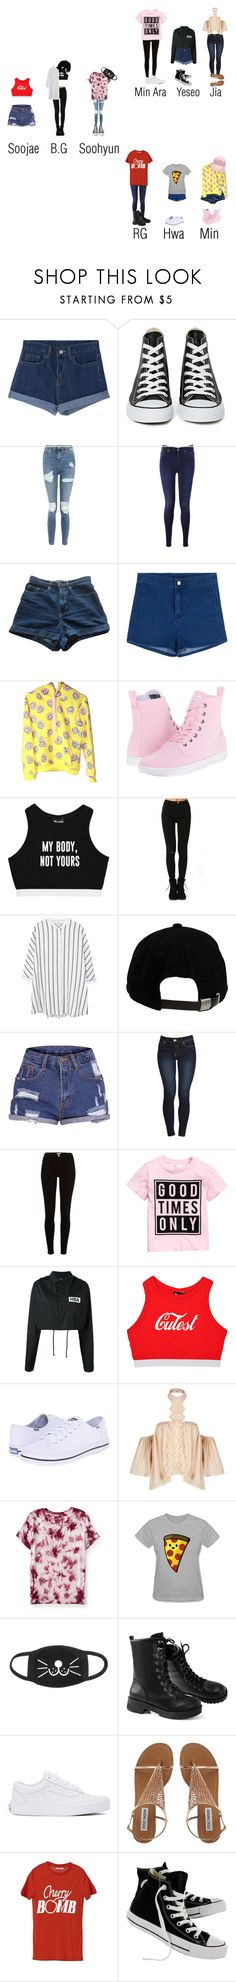 """""""I'm back with my members now ~BG"""" by rexanne-official ❤ liked on Polyvore featuring Converse, Topshop, 7 For All Mankind, American Apparel, Dr. Martens, Minga, MANGO, Brixton, River Island and Hood by Air"""